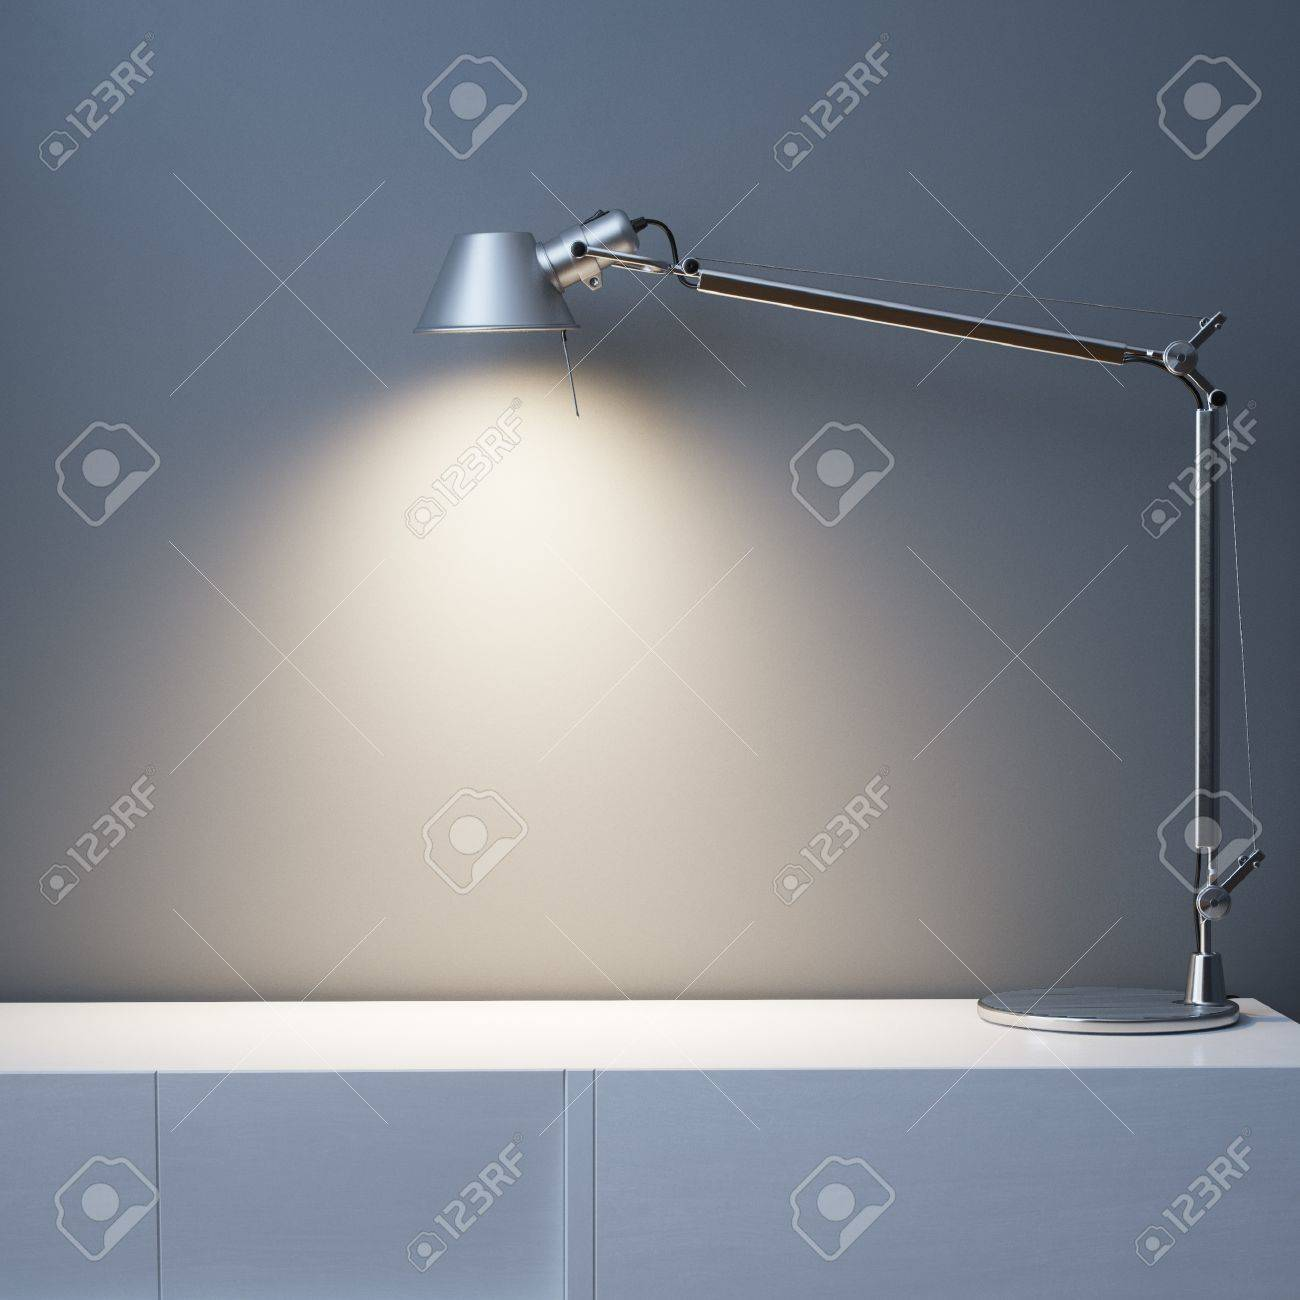 Metal Lamp On The White Desk In Black Wall Interior Room - 35889787